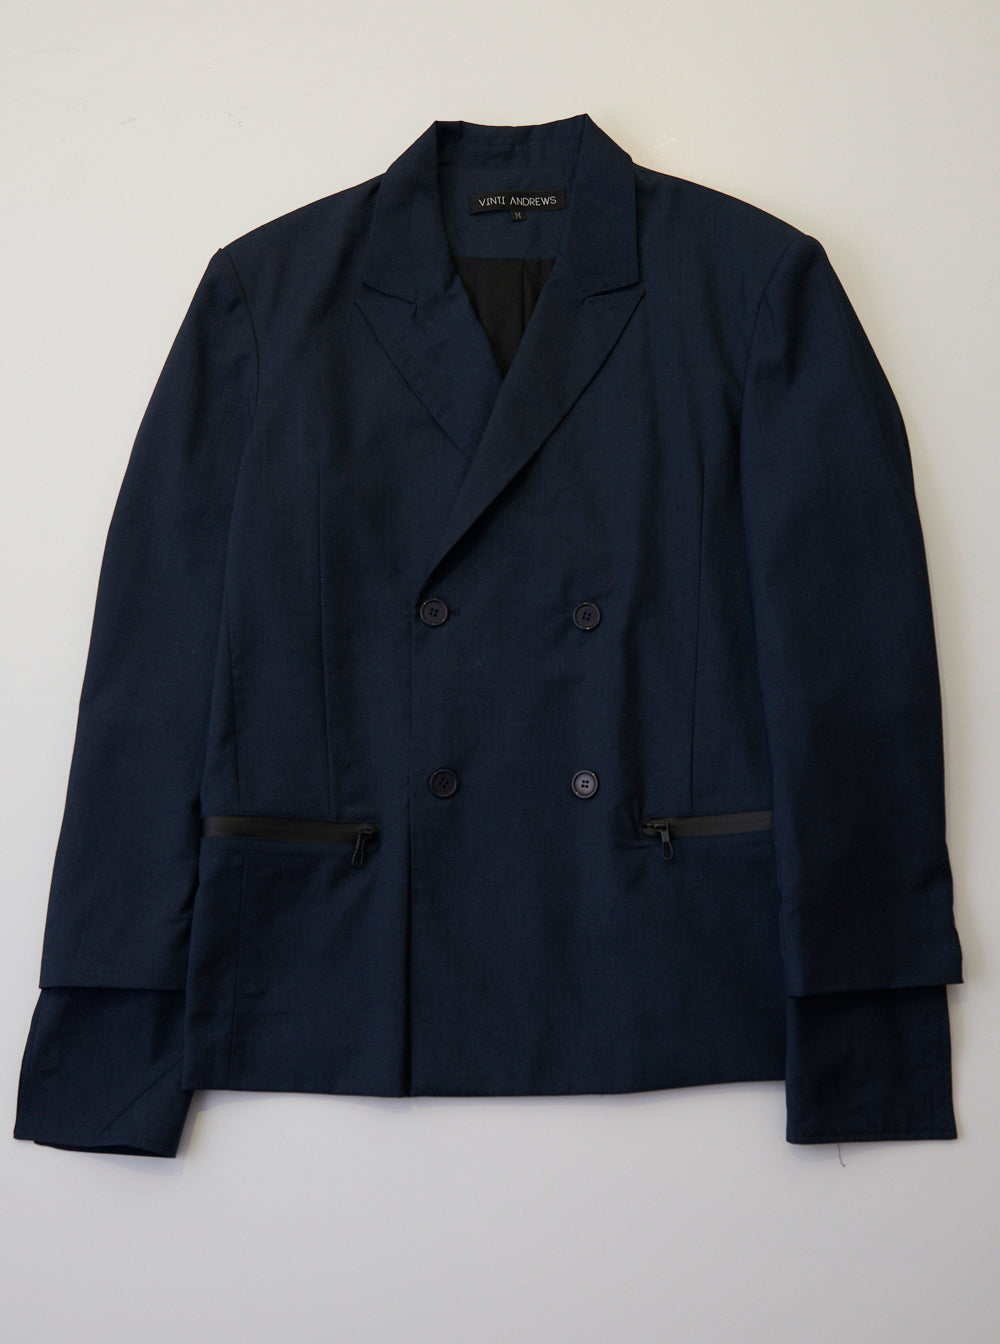 Vinti Andrews Tailor Jacket Midnight Blue Suiting